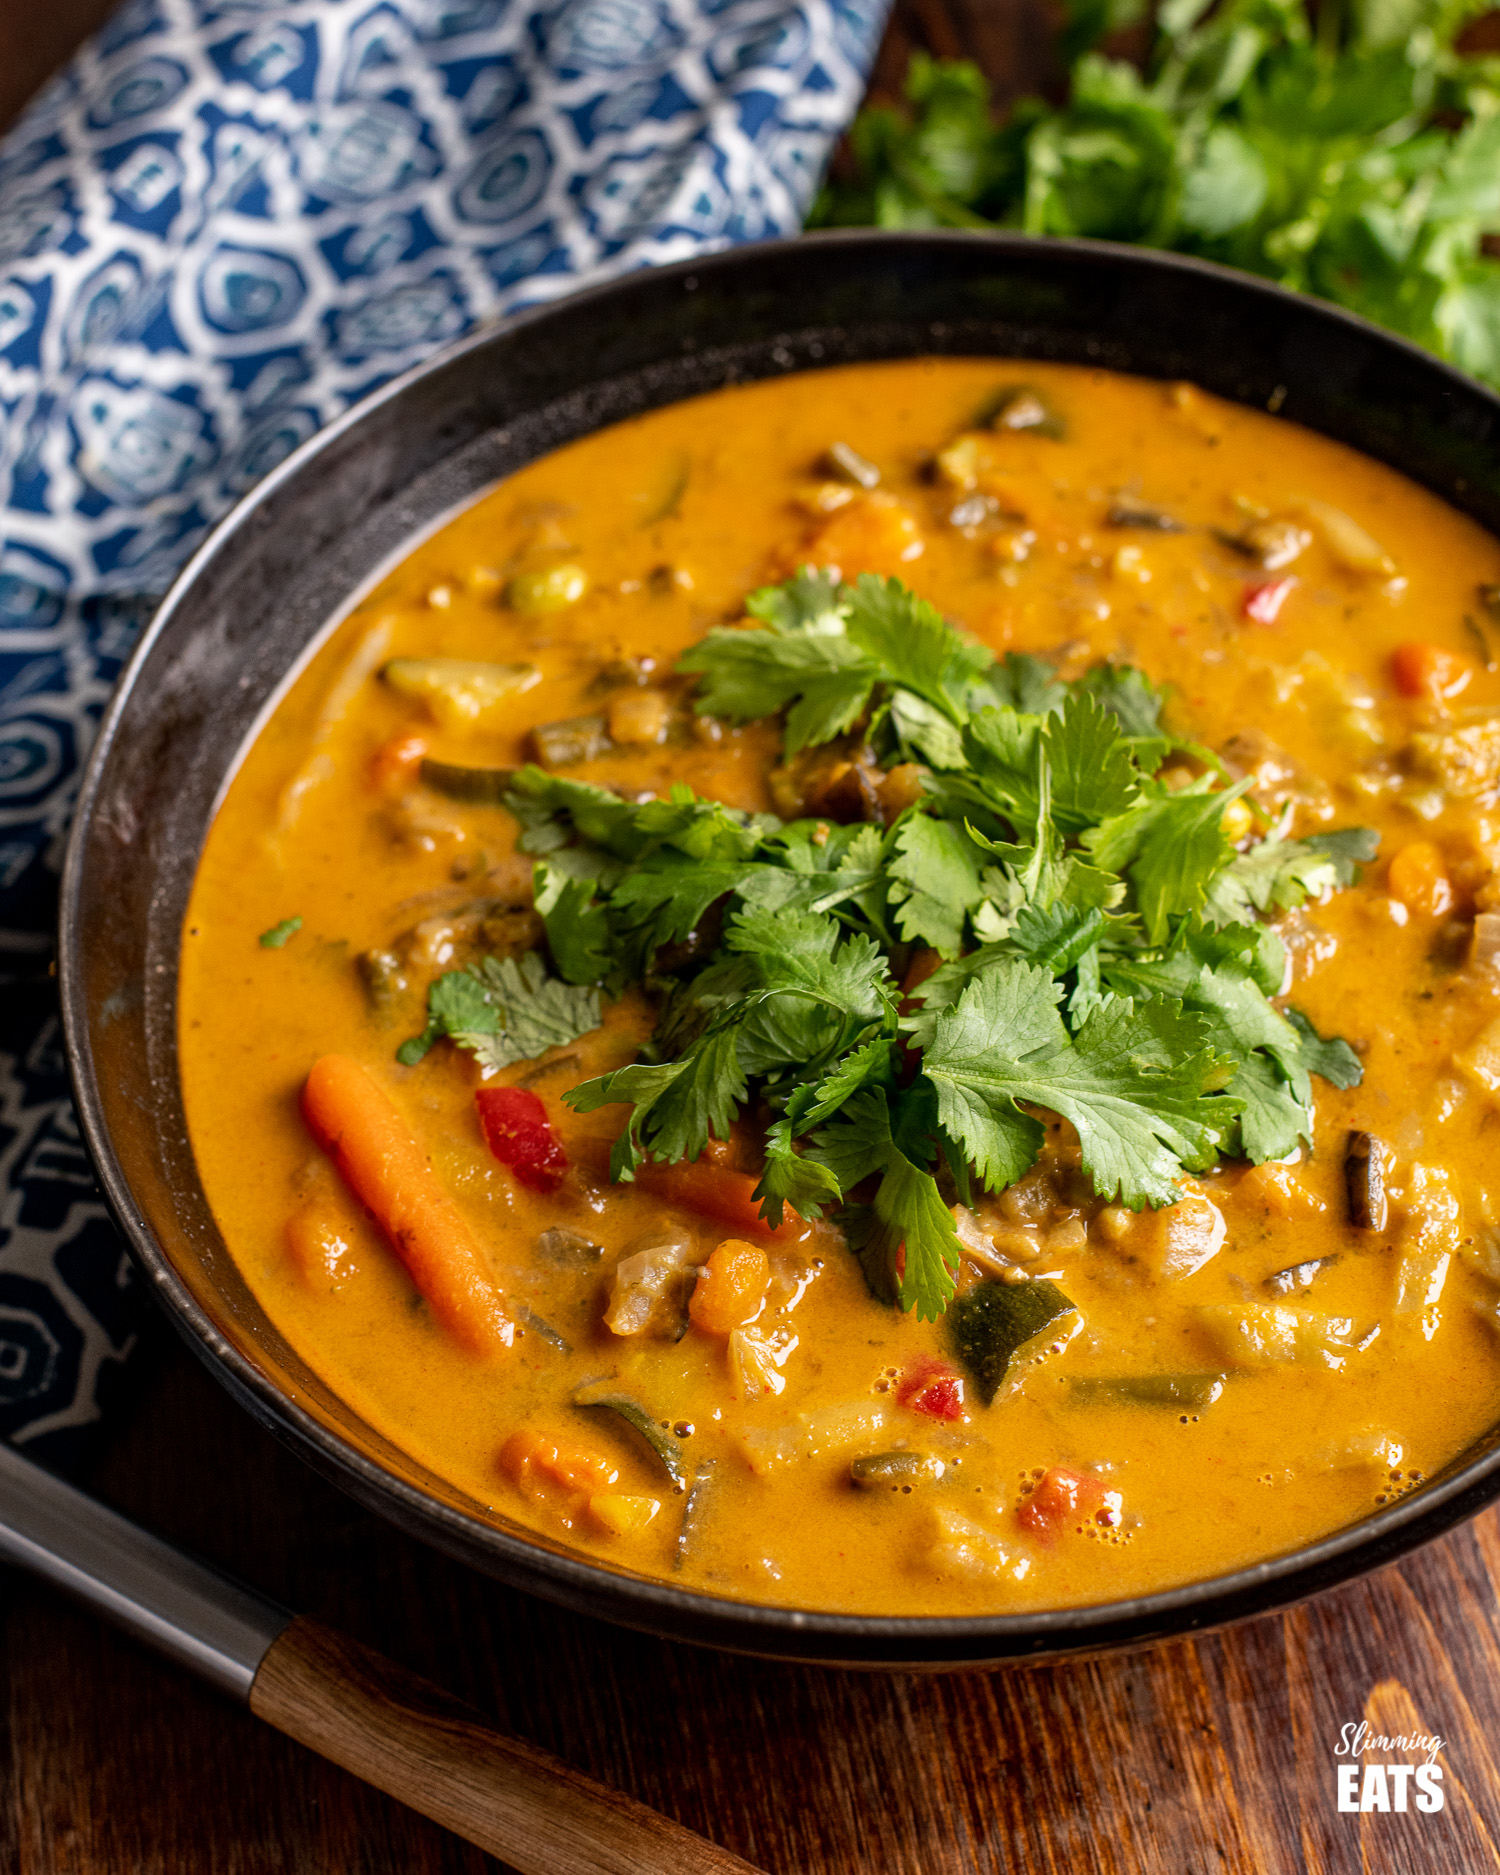 Thai Vegetable Soup in a black bowl topped with coriander